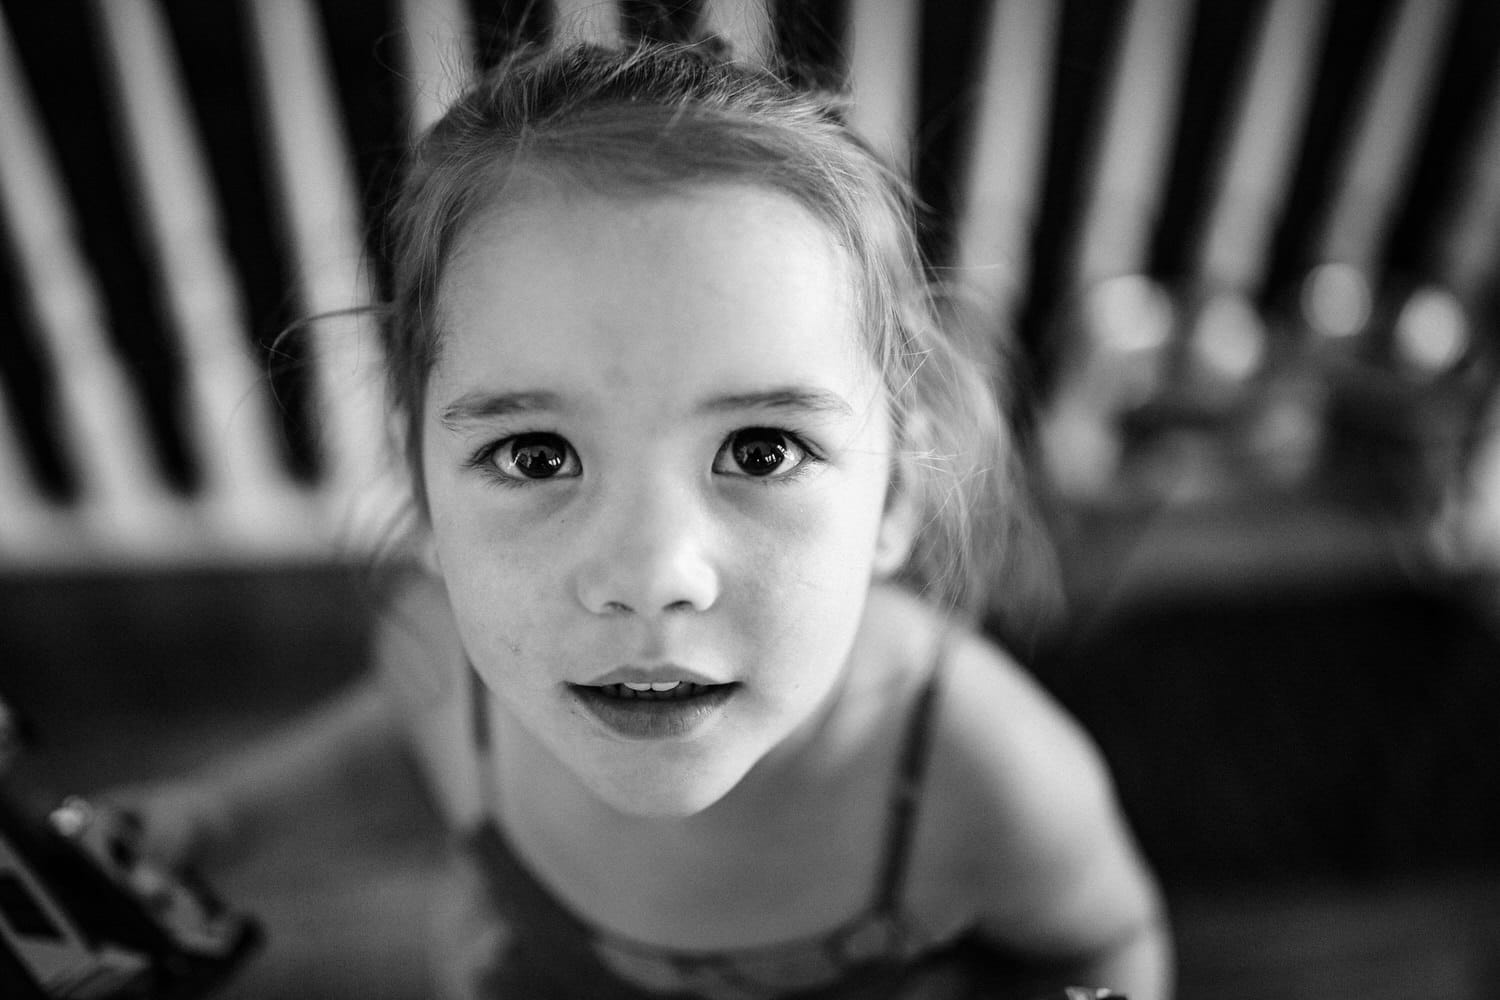 A toddler in her home playing during a Calgary photography shoot